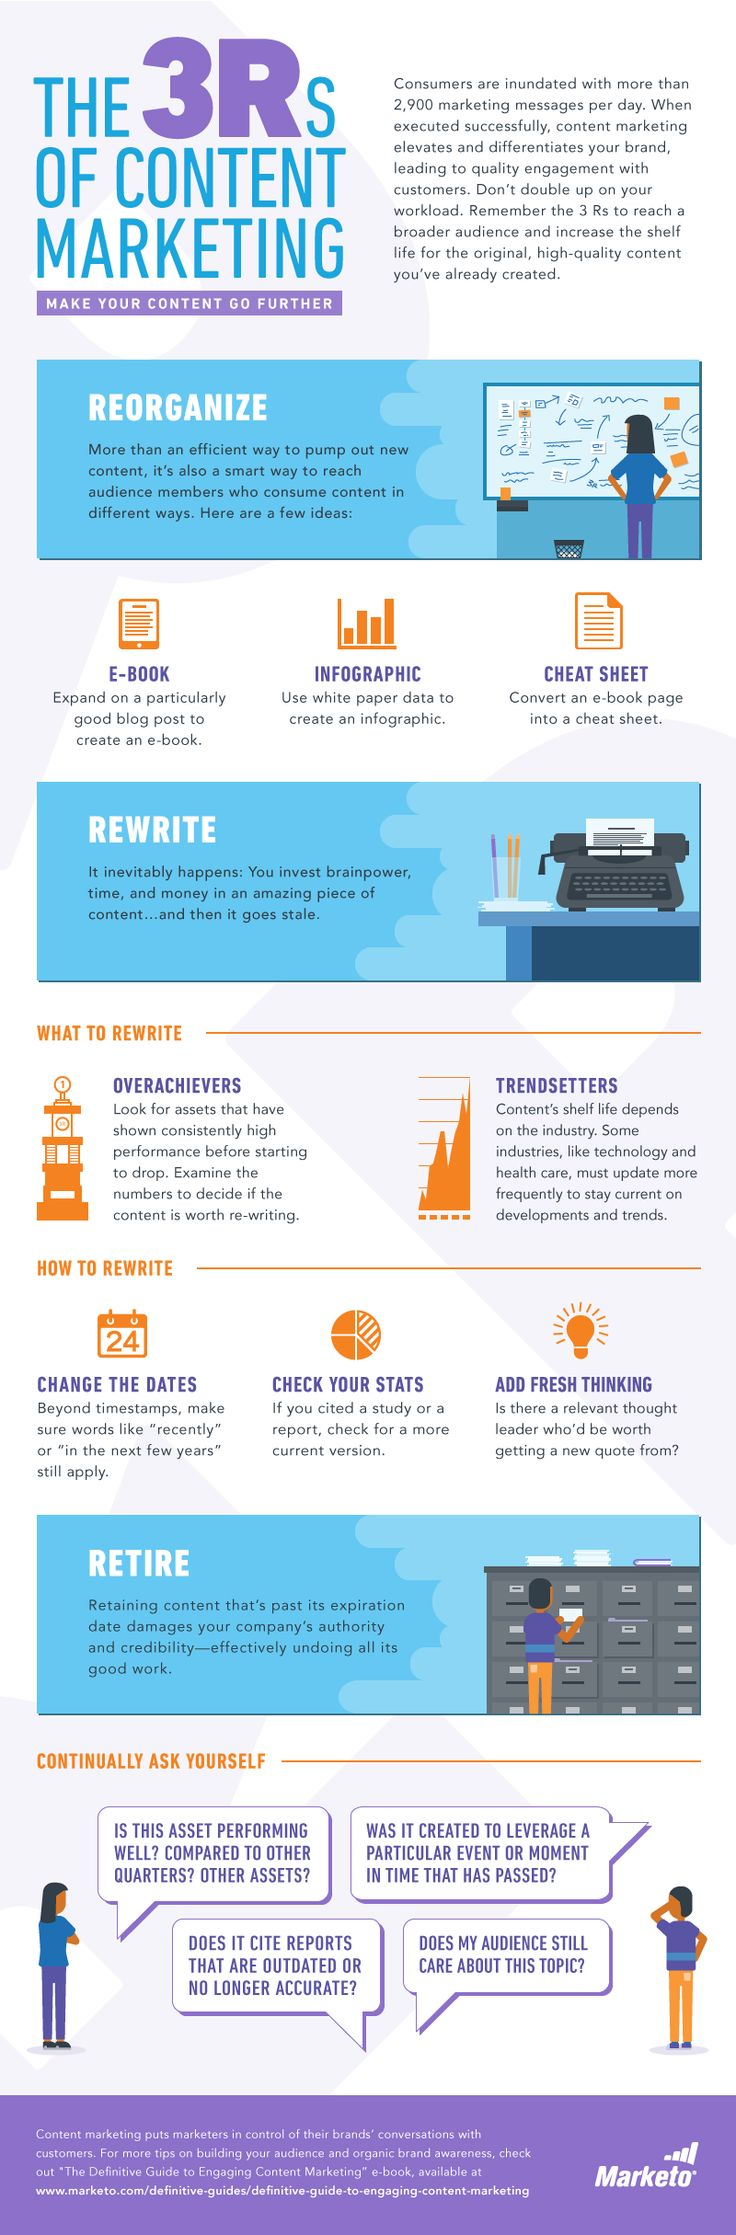 The-3Rs-of-Content-Marketing-Infographic.png (800×2430)